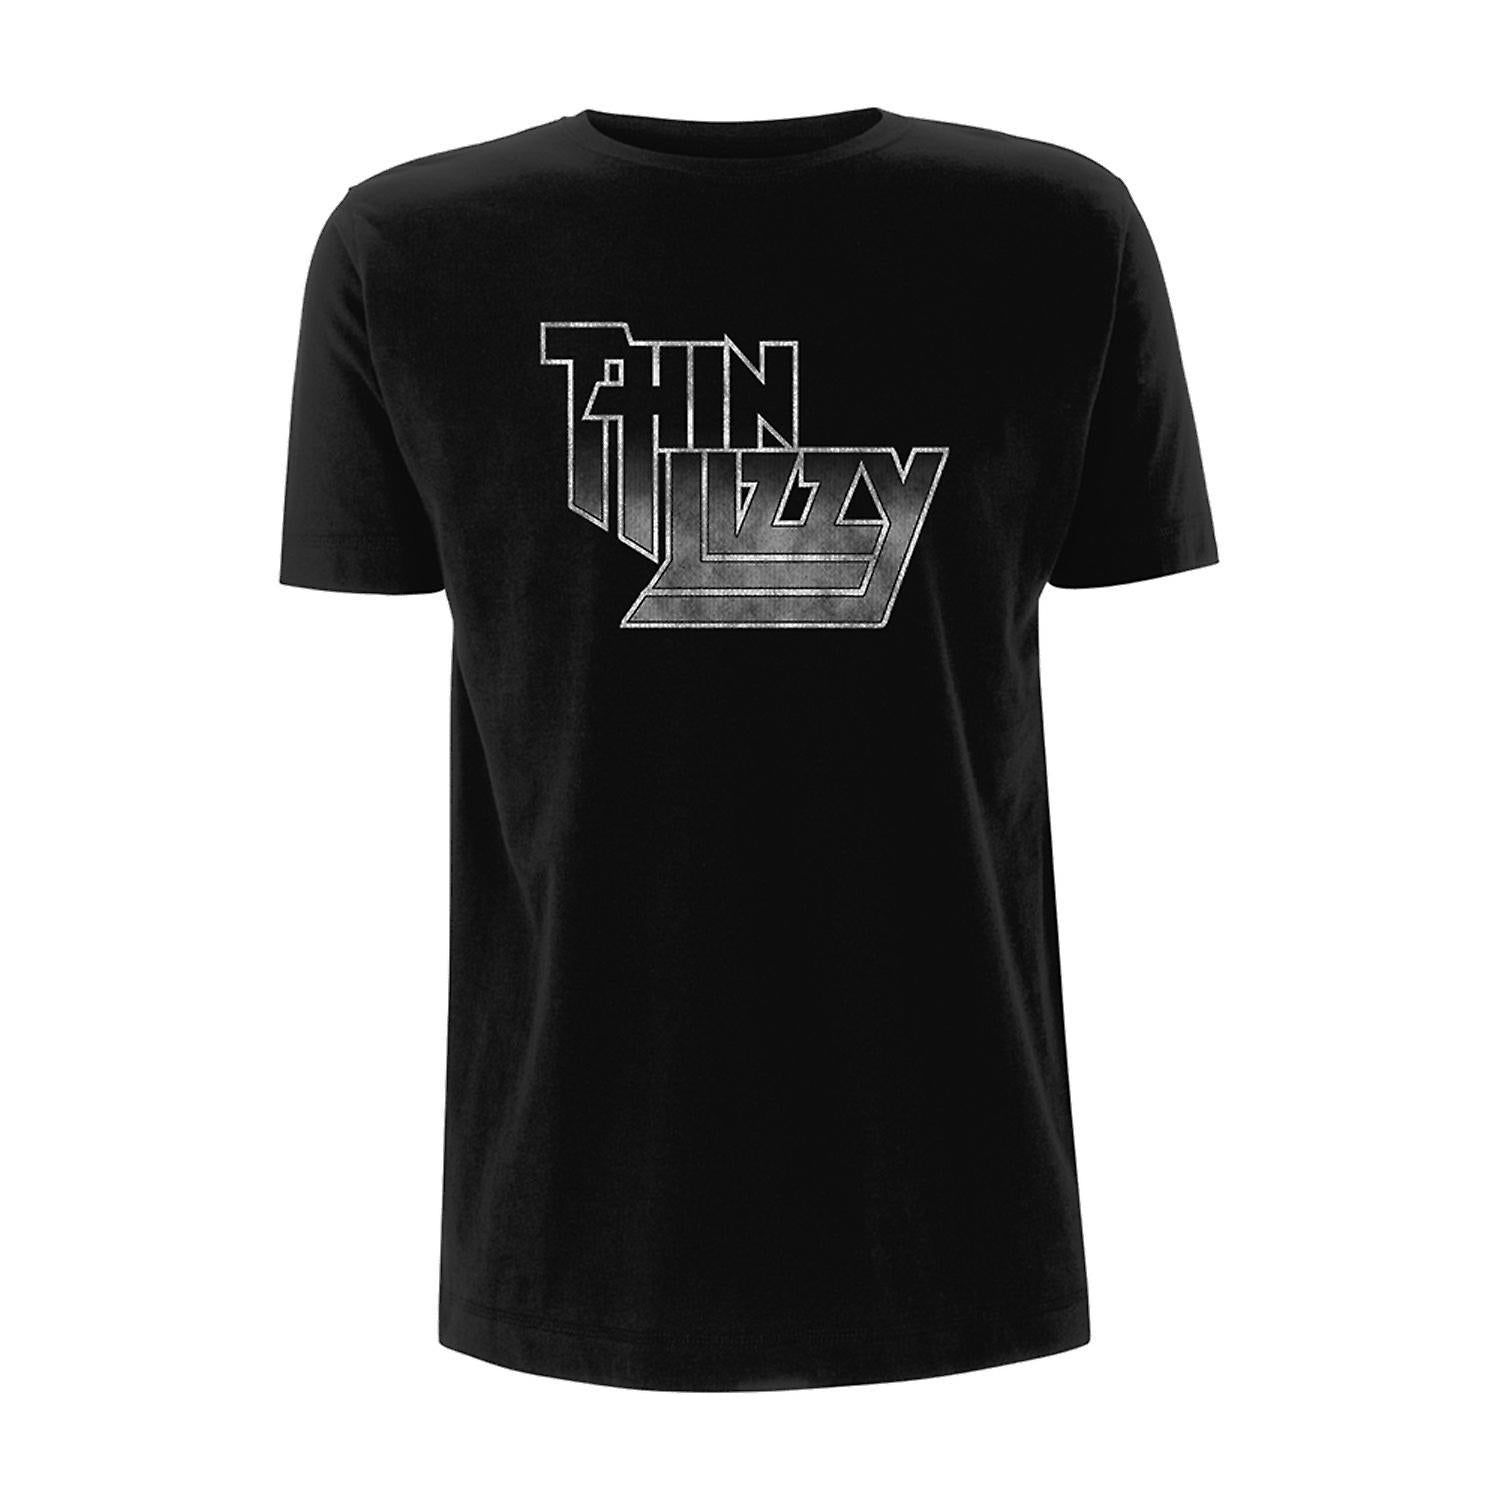 THIN LIZZY GRADIENT LOGO - LARGE [T-SHIRTS]